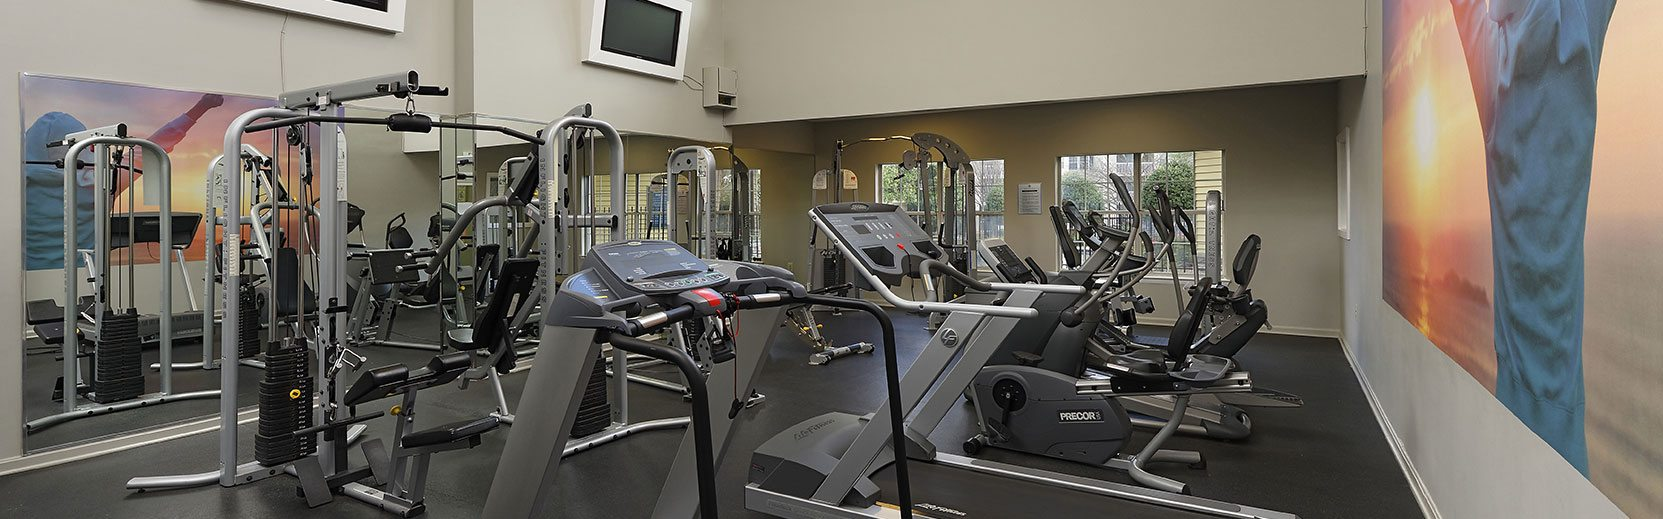 arcadian-apartment-community-fitness-center